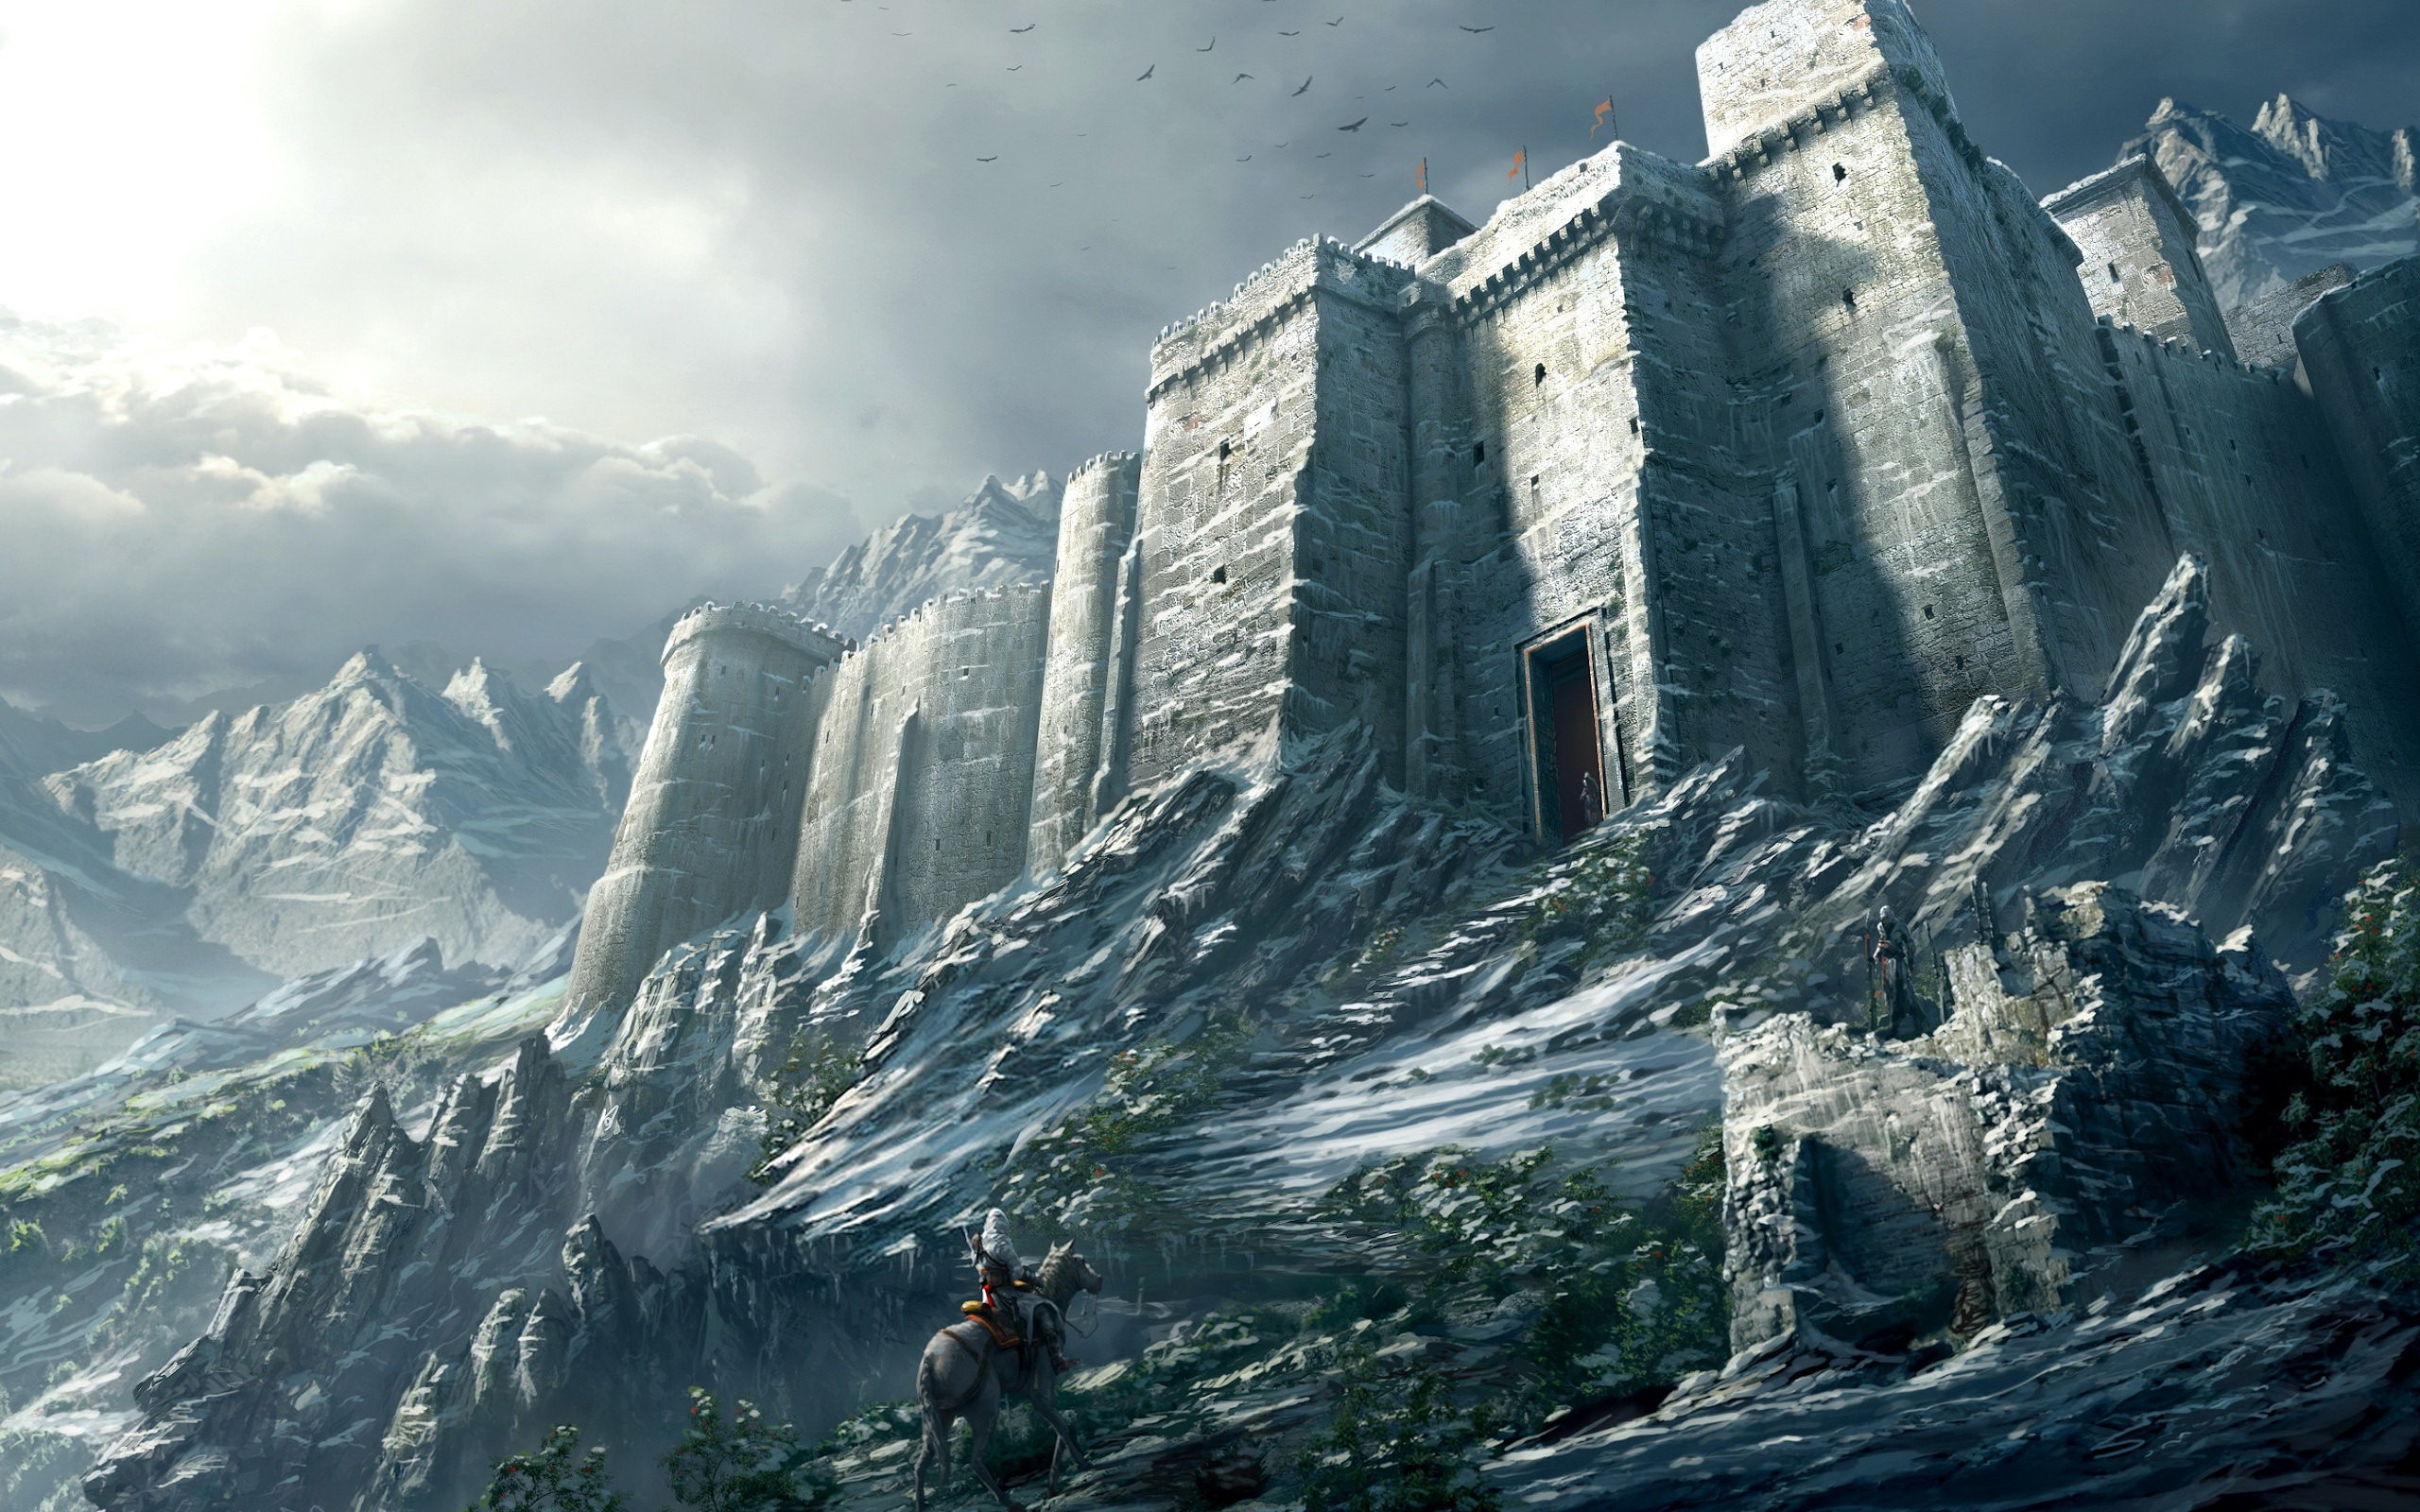 castle-mountains-snow-soldier.jpg